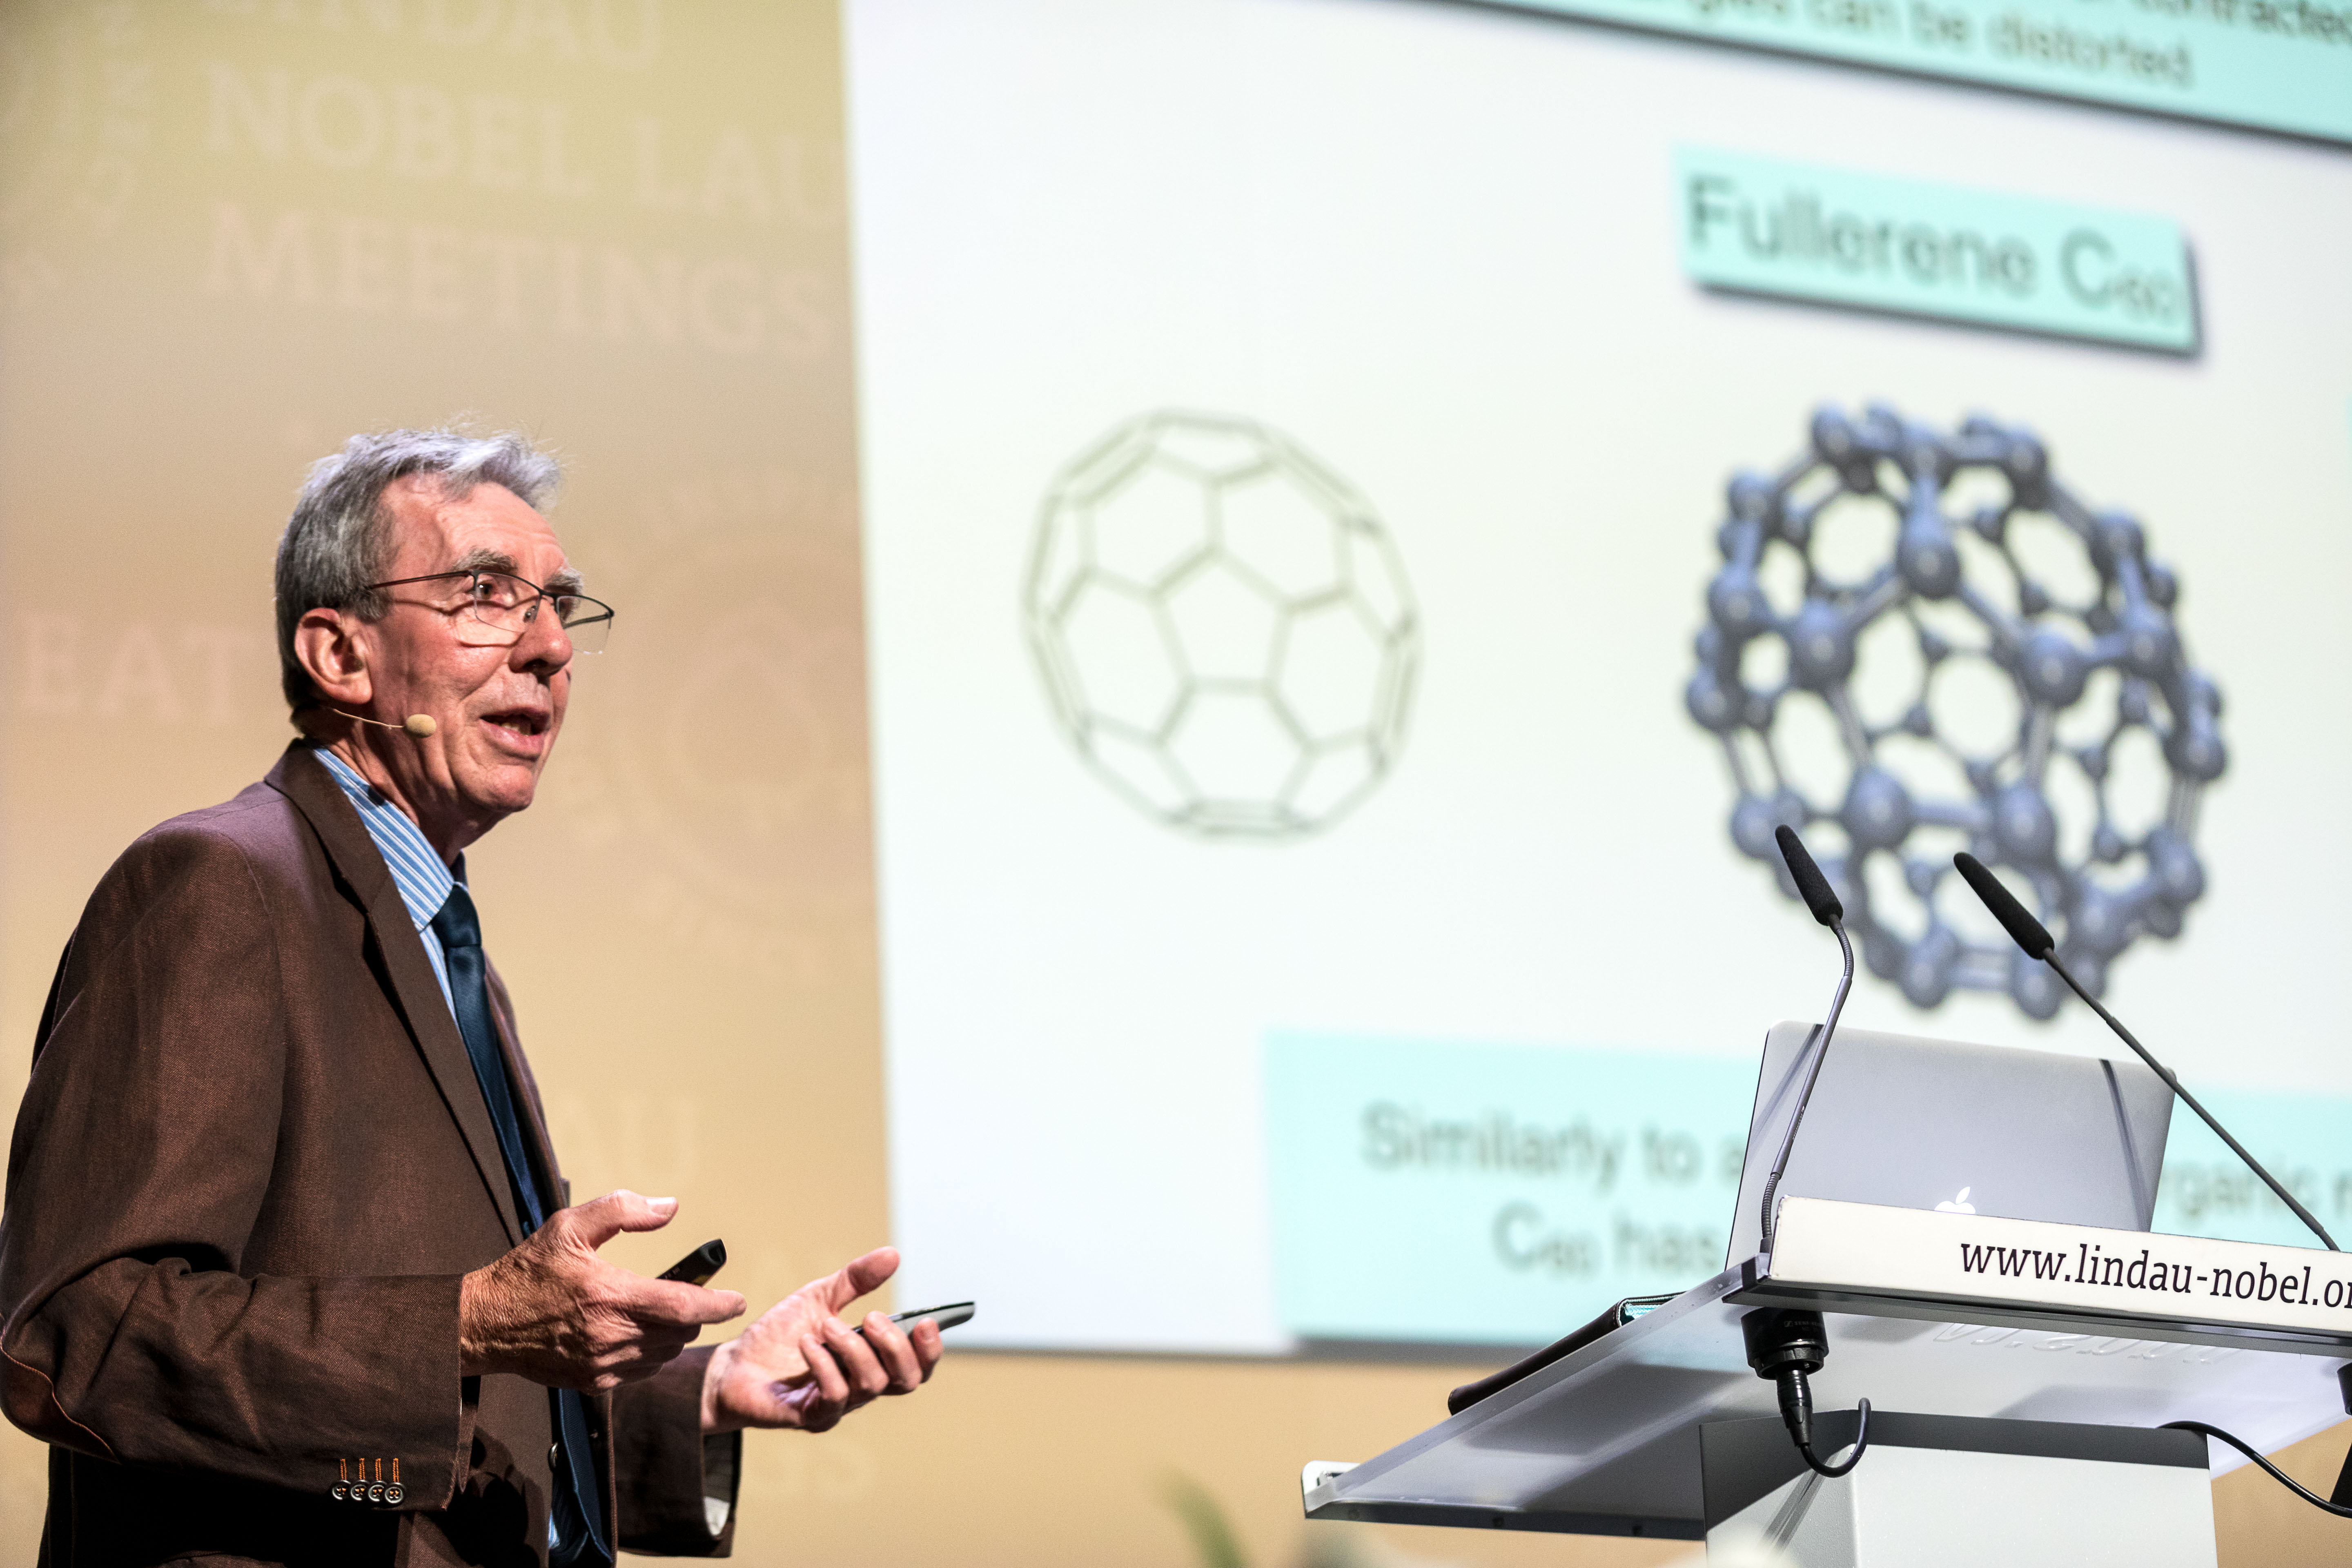 Jean-Pierre Sauvage during his lecture at the 67th Lindau Meeting, Picture/Credit: Christian Flemming/Lindau Nobel Laureate Meetings